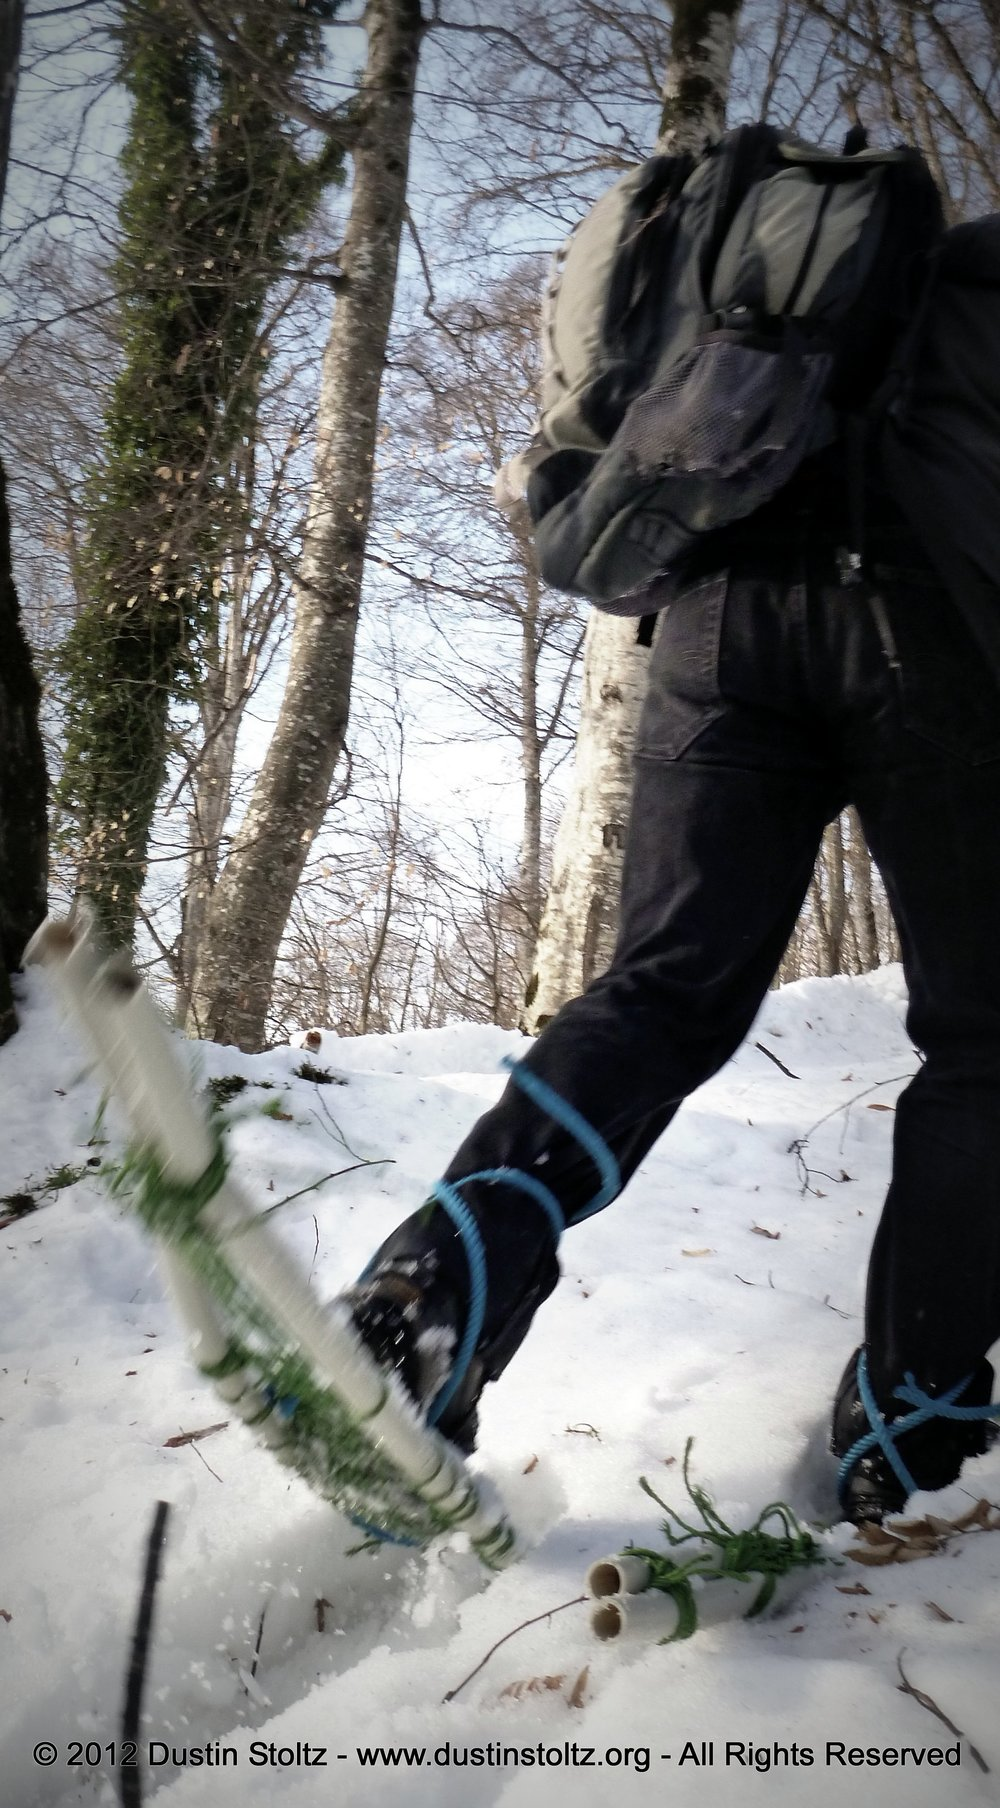 Trying out our homemade snowshoes. Zaqatala Rayon, Azerbaijan